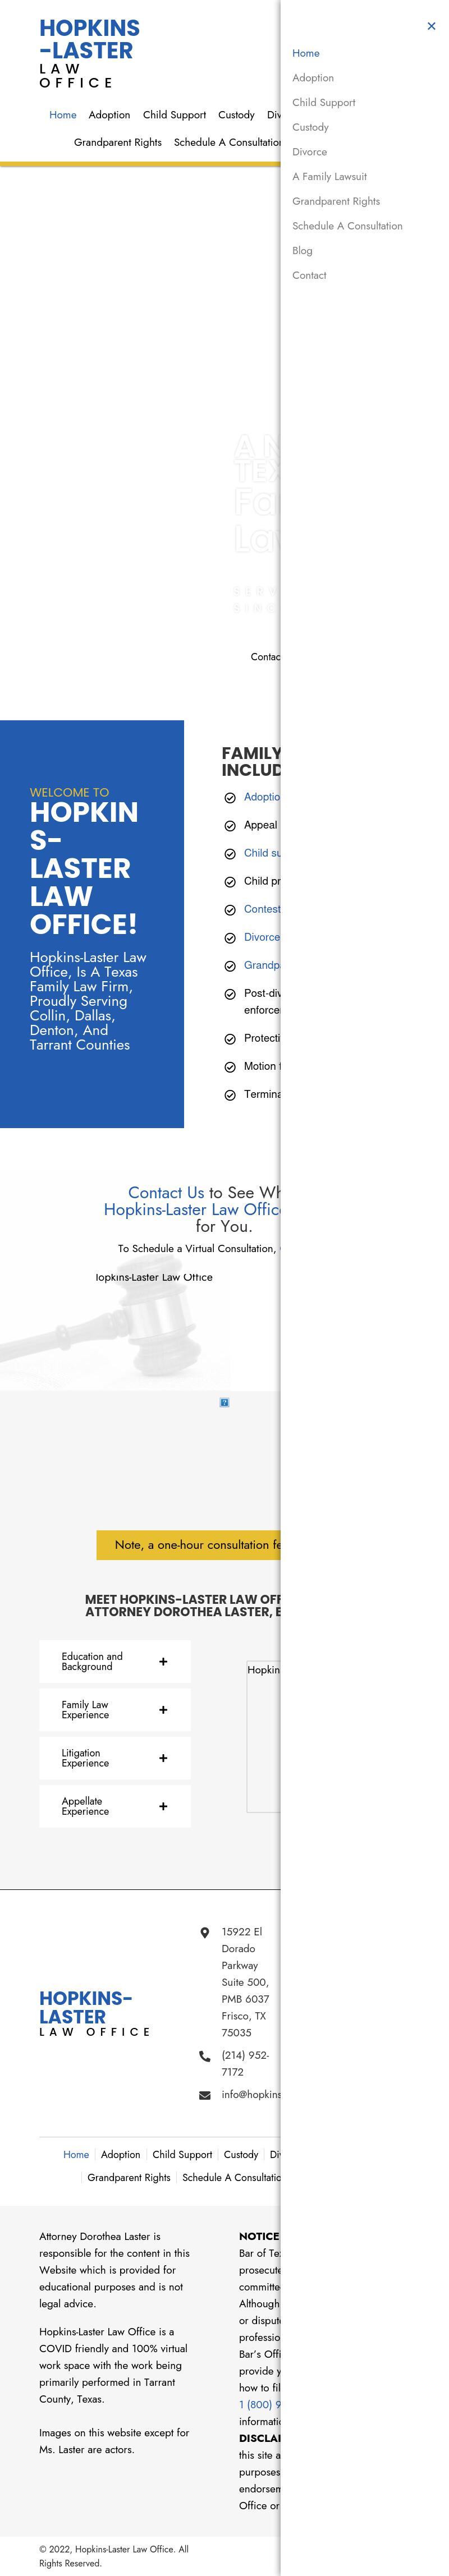 Hopkins-Laster Law Office - Lake Dallas TX Lawyers